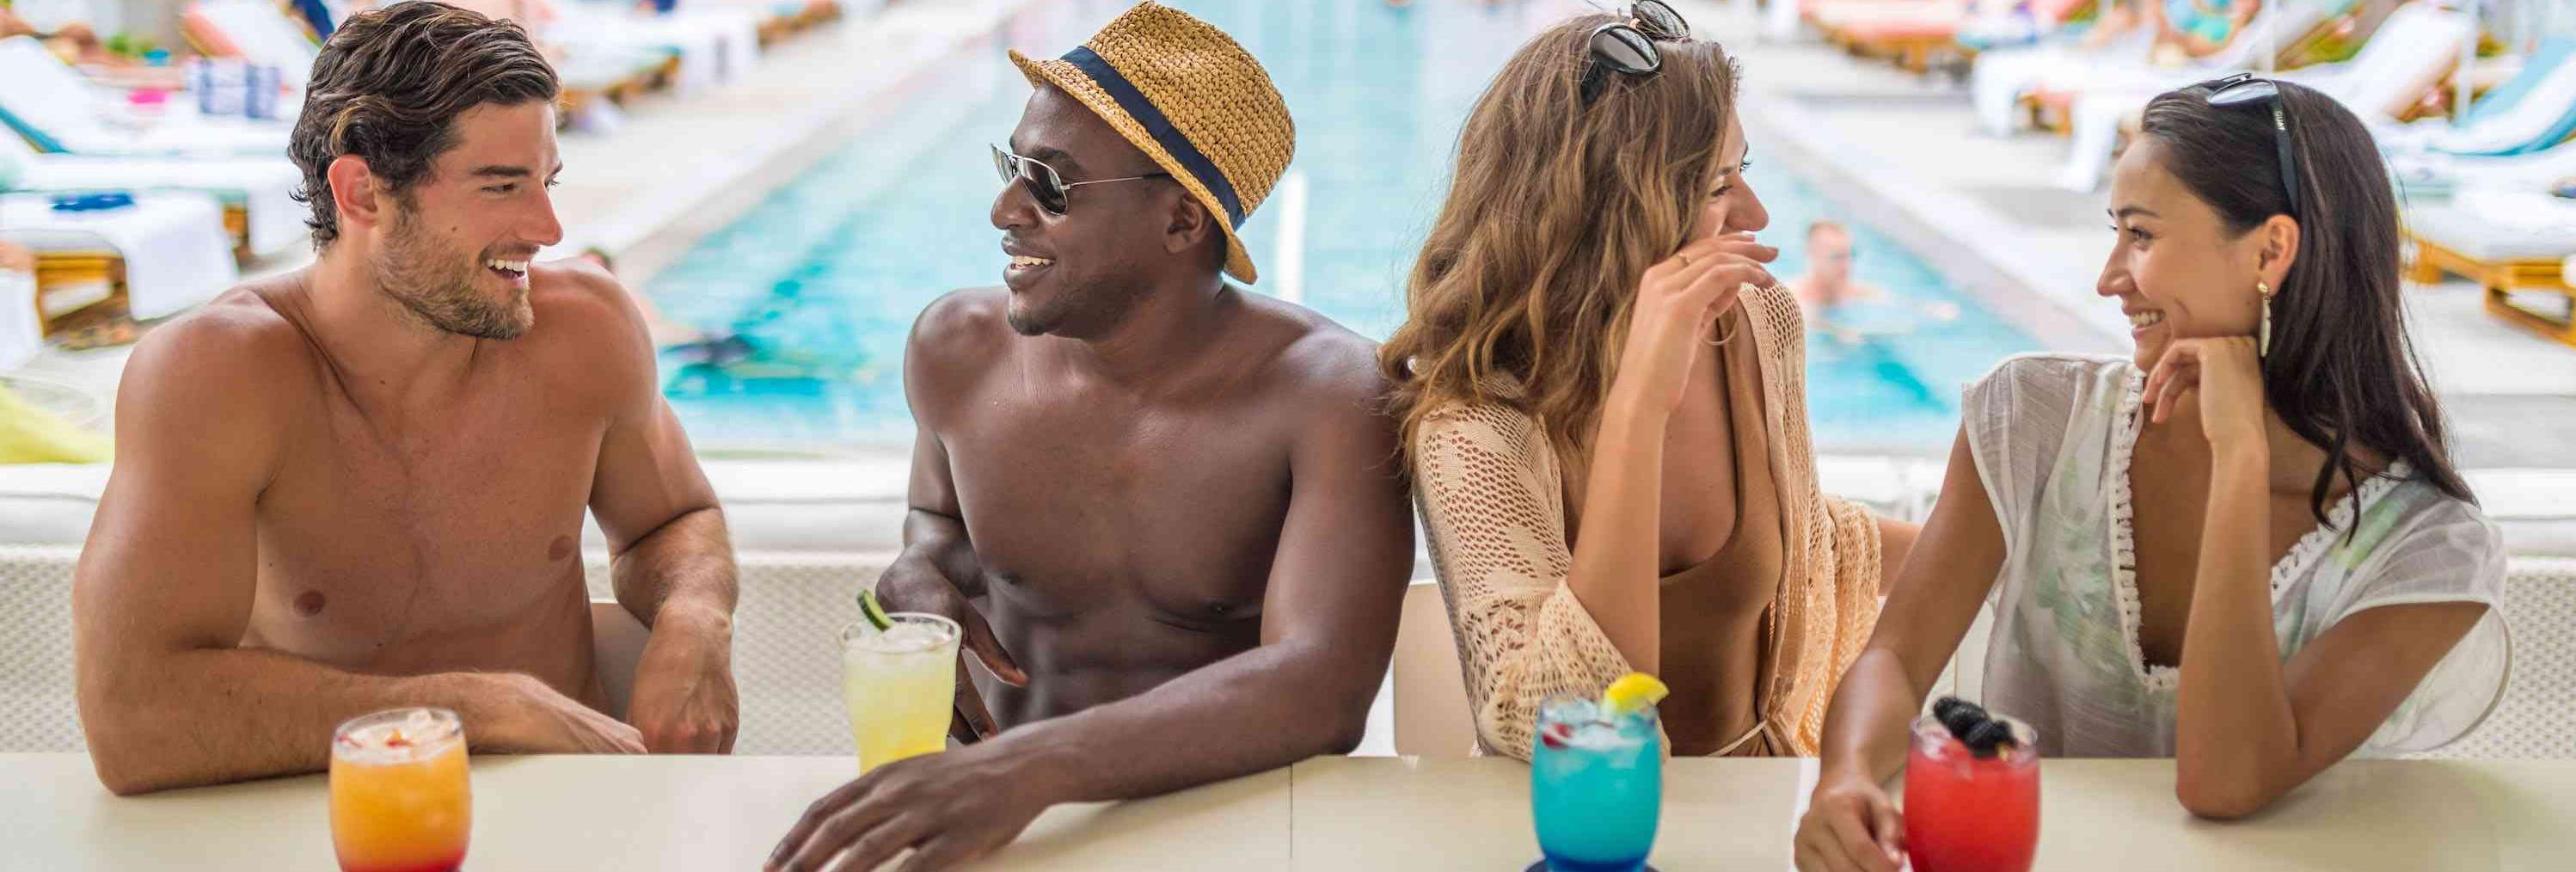 four people at a pool with drink outside